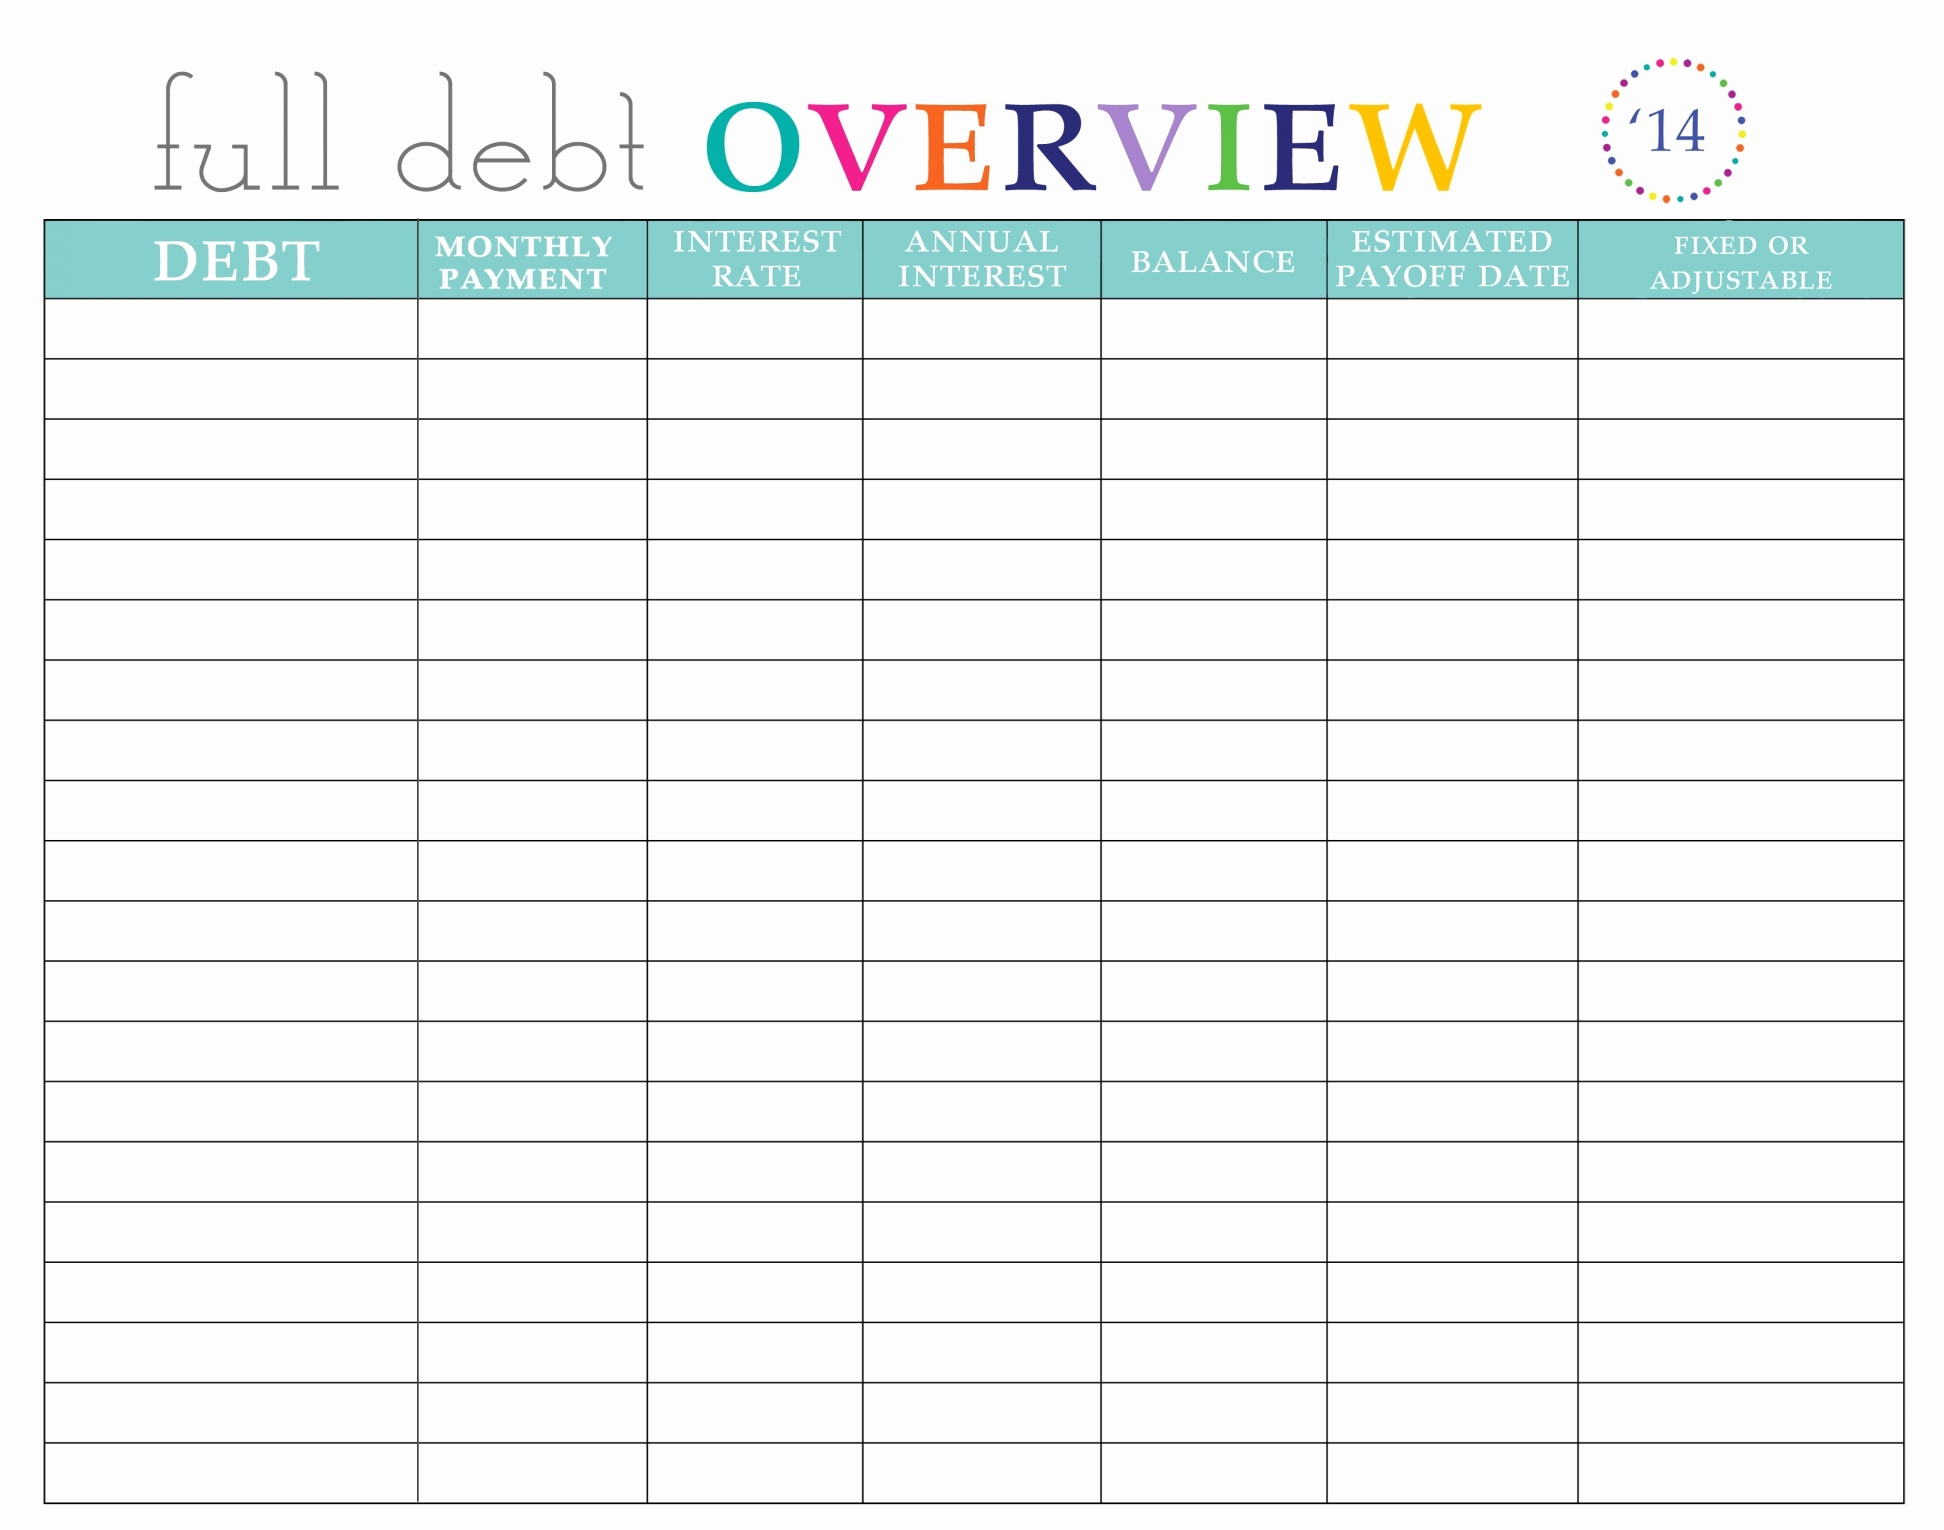 Rent Collection Spreadsheet Beautiful Spreadsheet Template Inside Landlord Accounting Spreadsheet